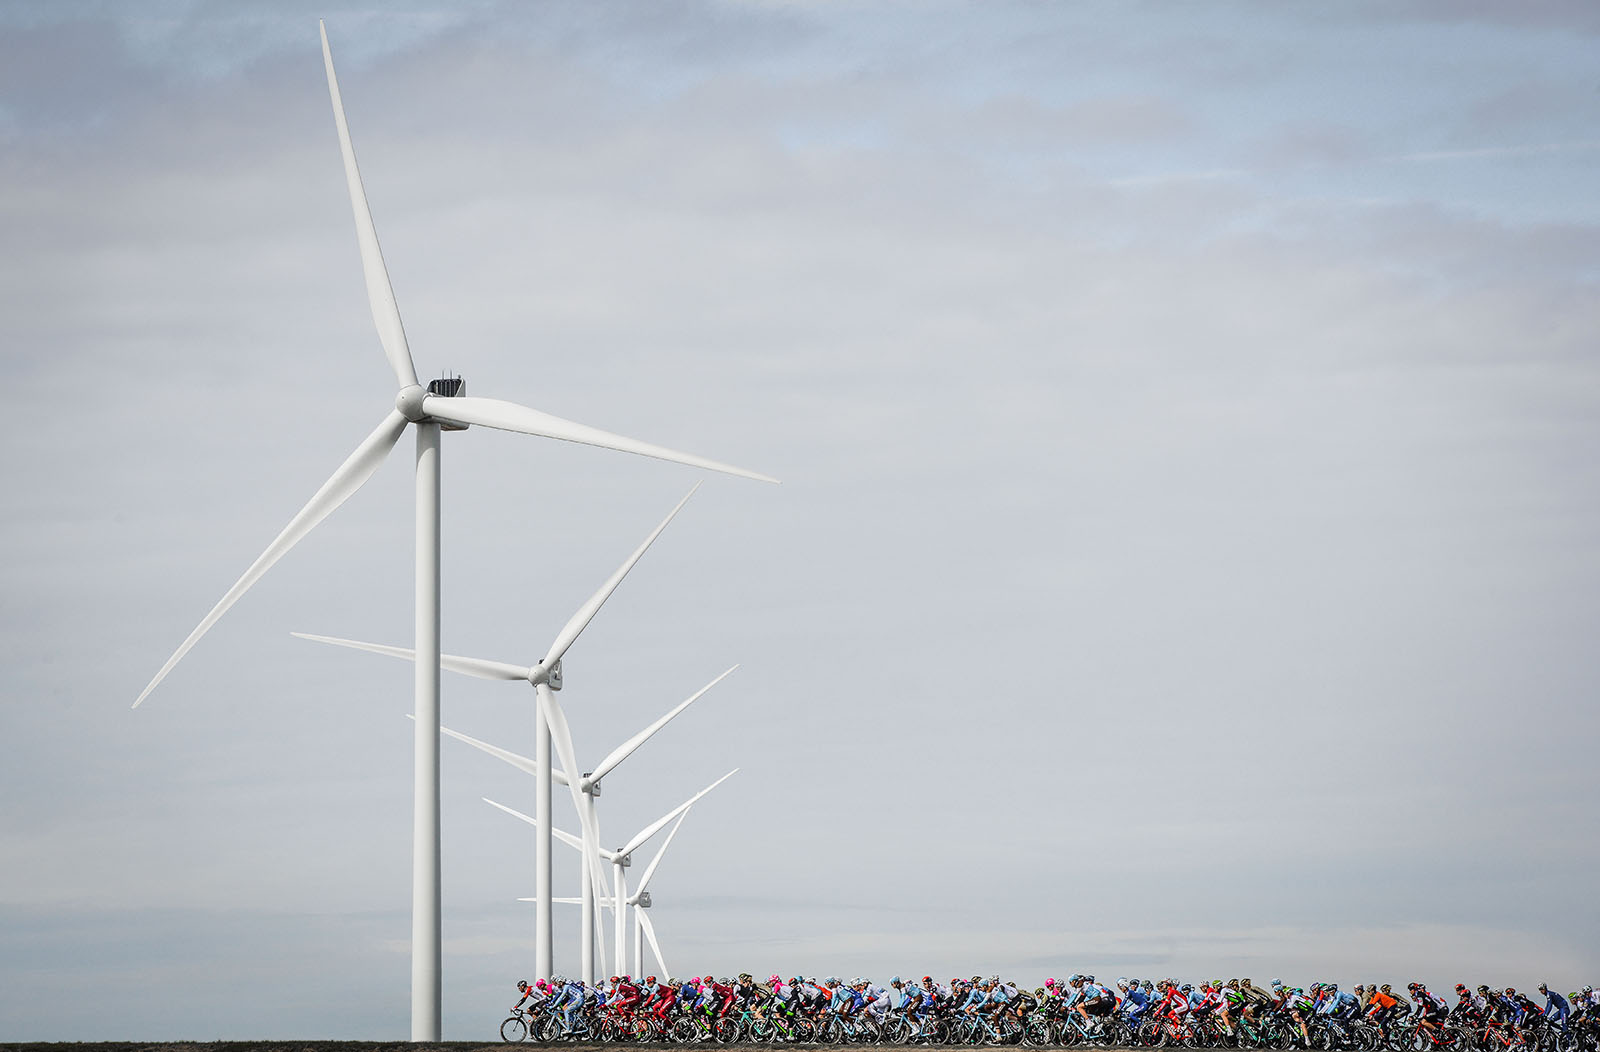 The Peleton passing some Windmills in Paris-Nice Cycling race